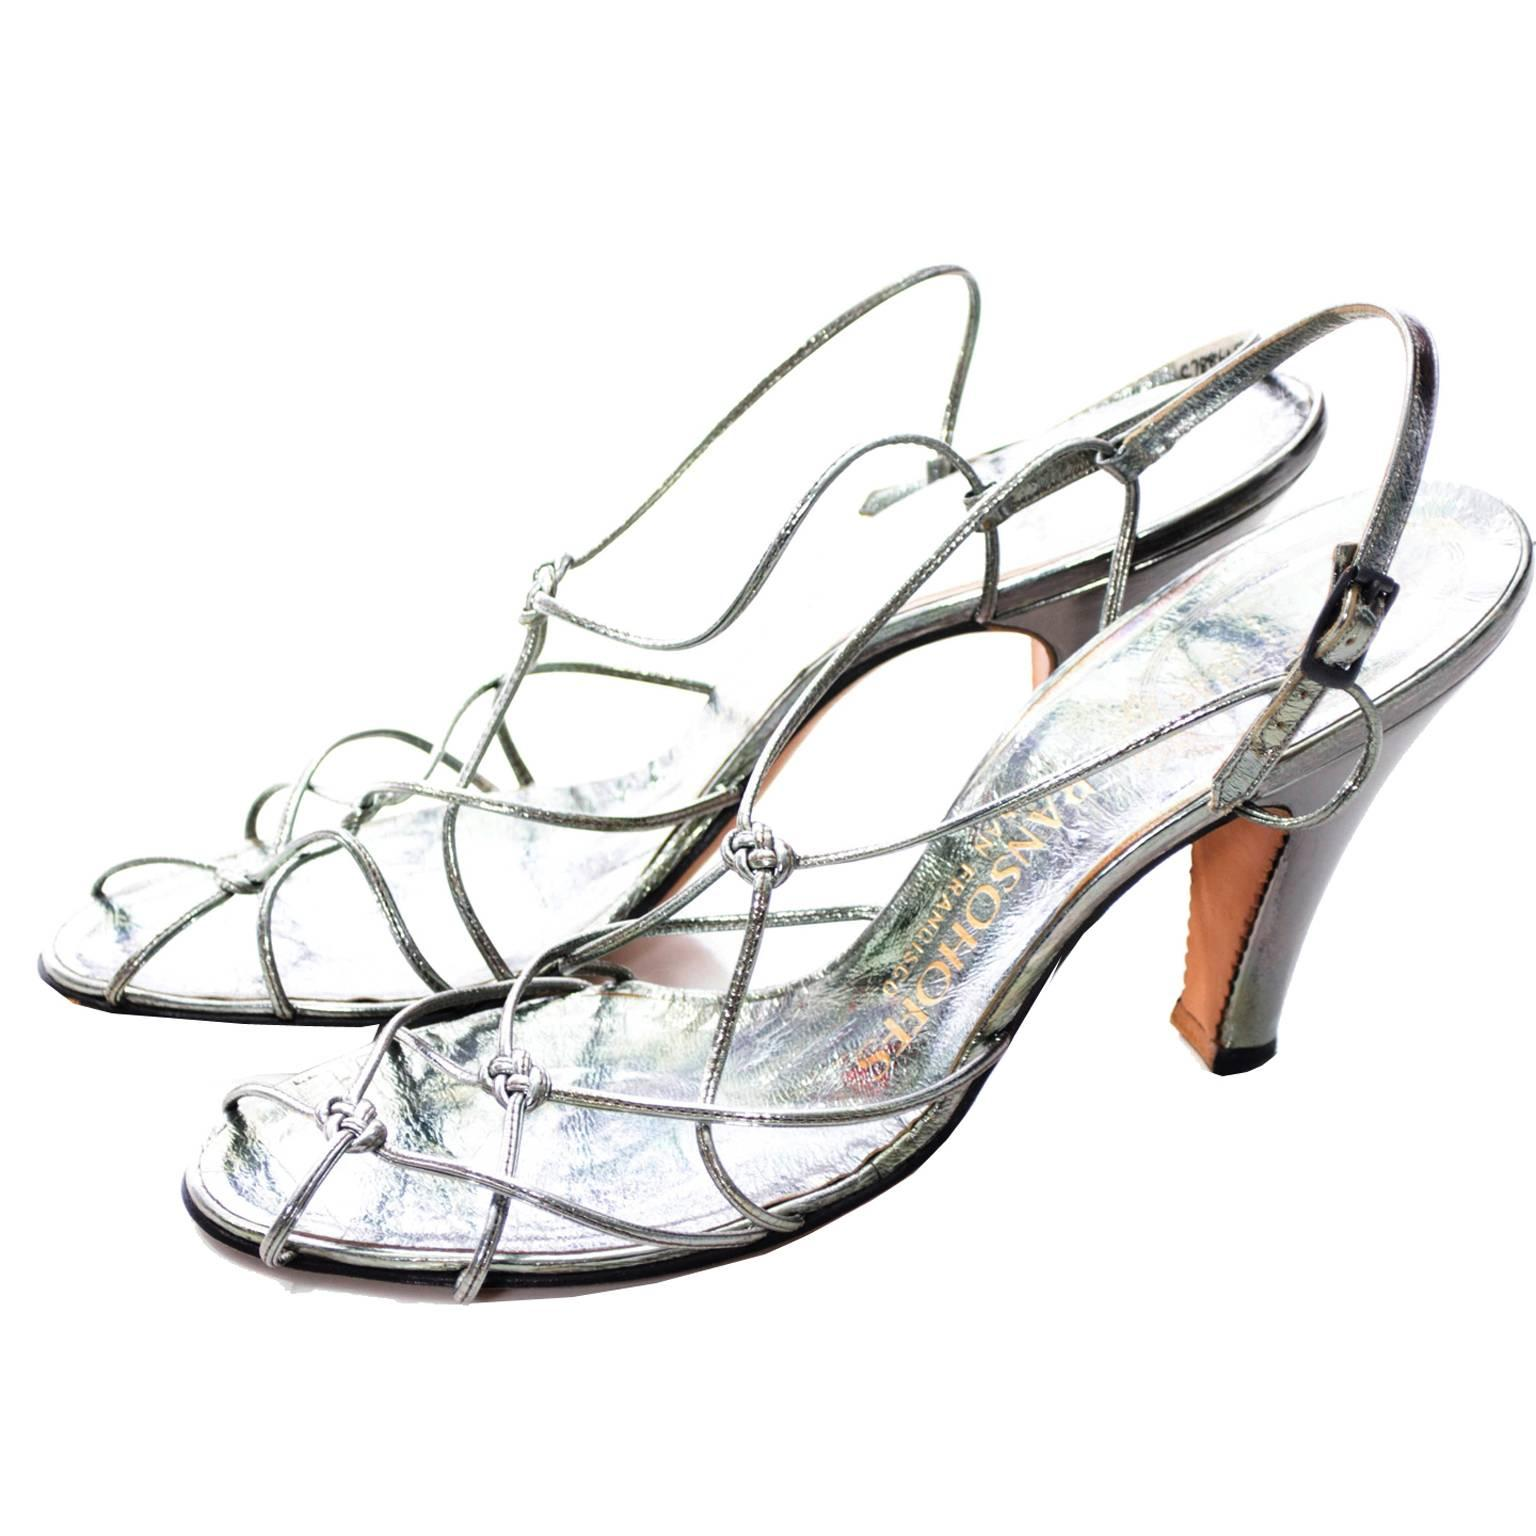 rare delman de luxe metallic vintage shoes ransohoffs strappy 1950s 1950 Shoe Styles rare delman de luxe metallic vintage shoes ransohoffs strappy 1950s size 8 heels at 1stdibs